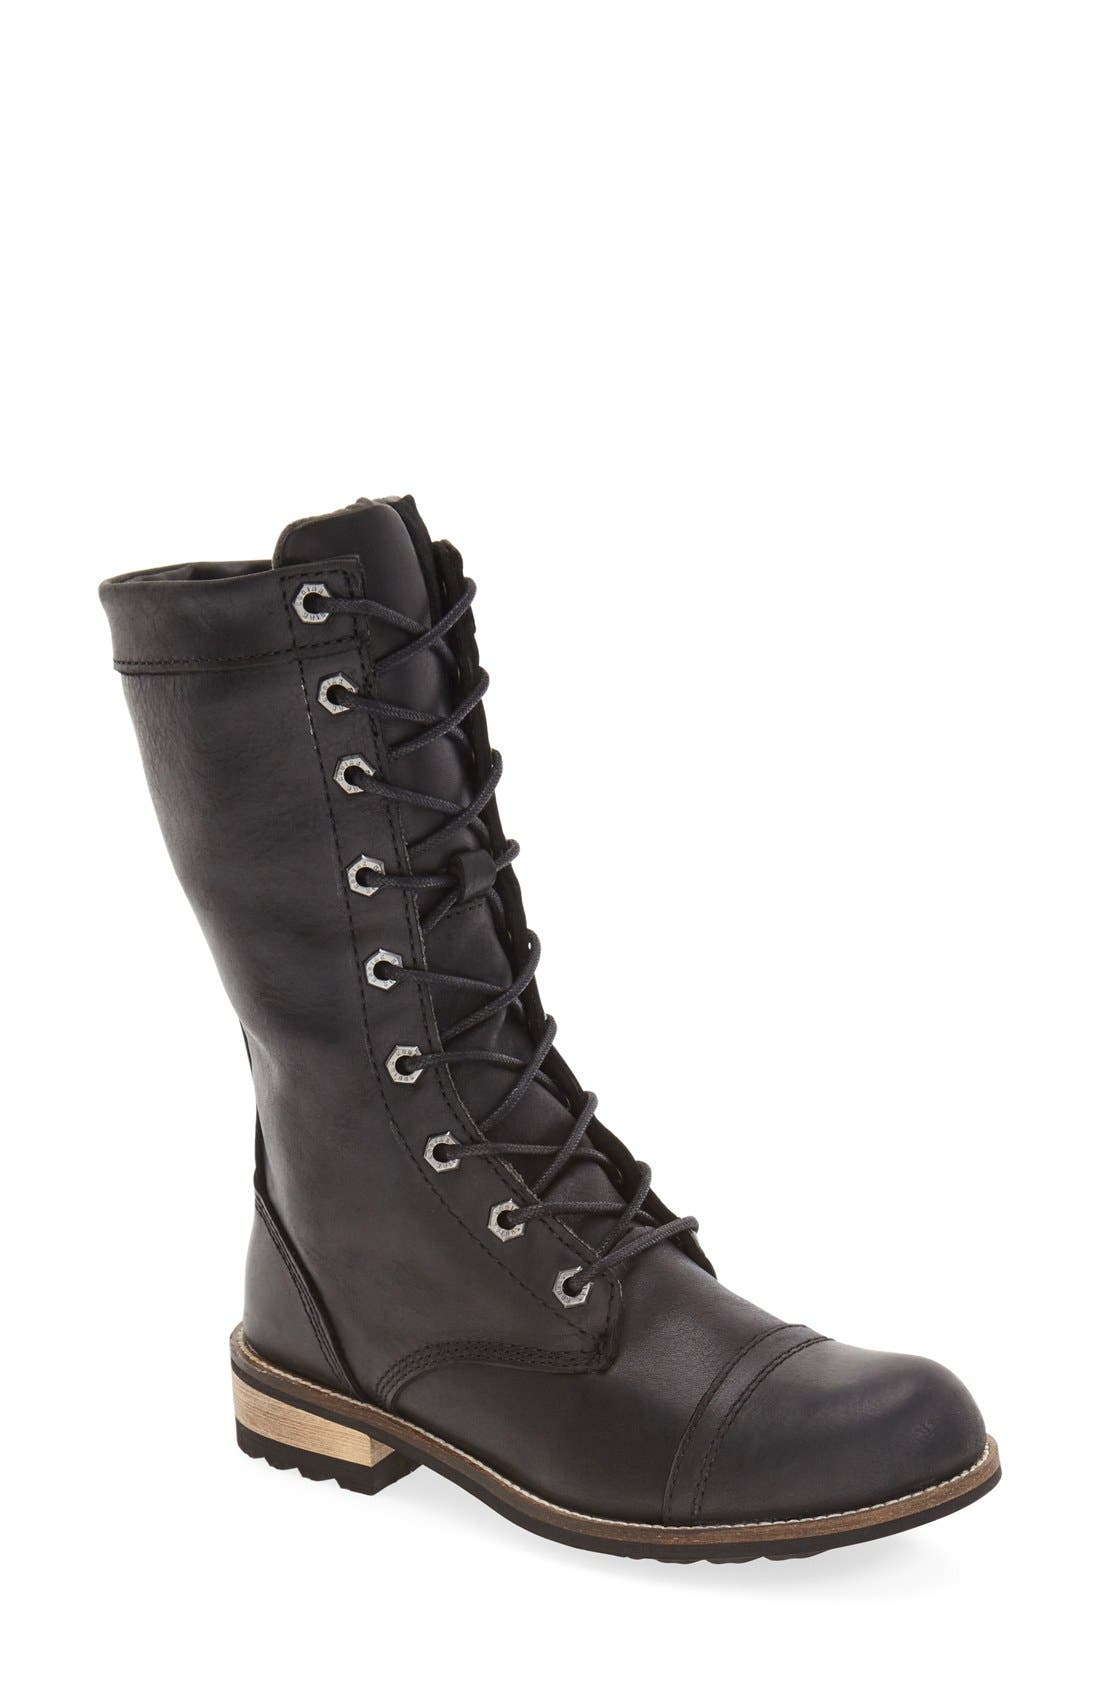 Beautiful Kodiak Skyla Leather Pac Boots (For Women) - Save 70%